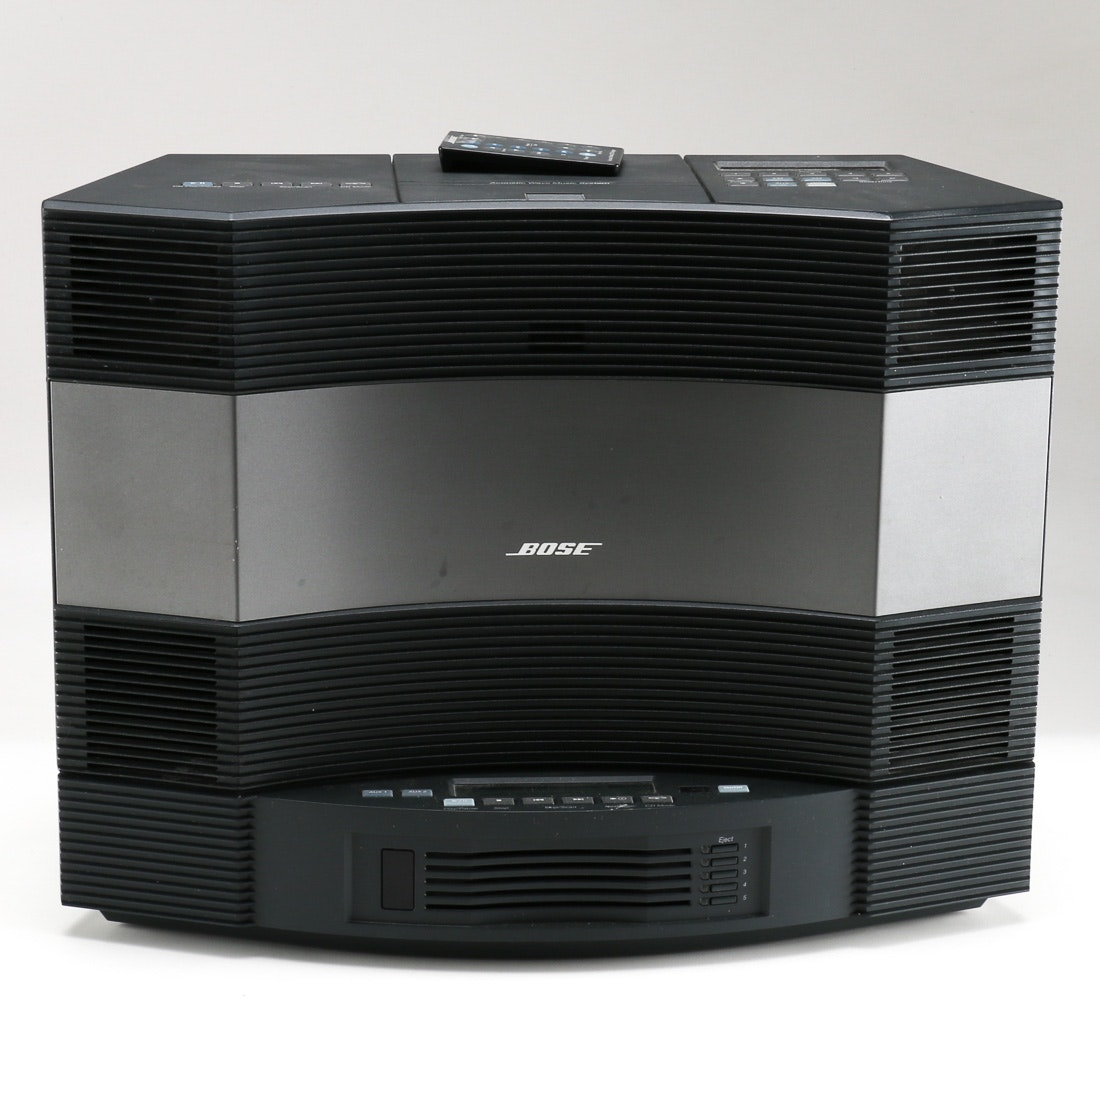 bose acoustic wave music system and multi disc changer ebth. Black Bedroom Furniture Sets. Home Design Ideas